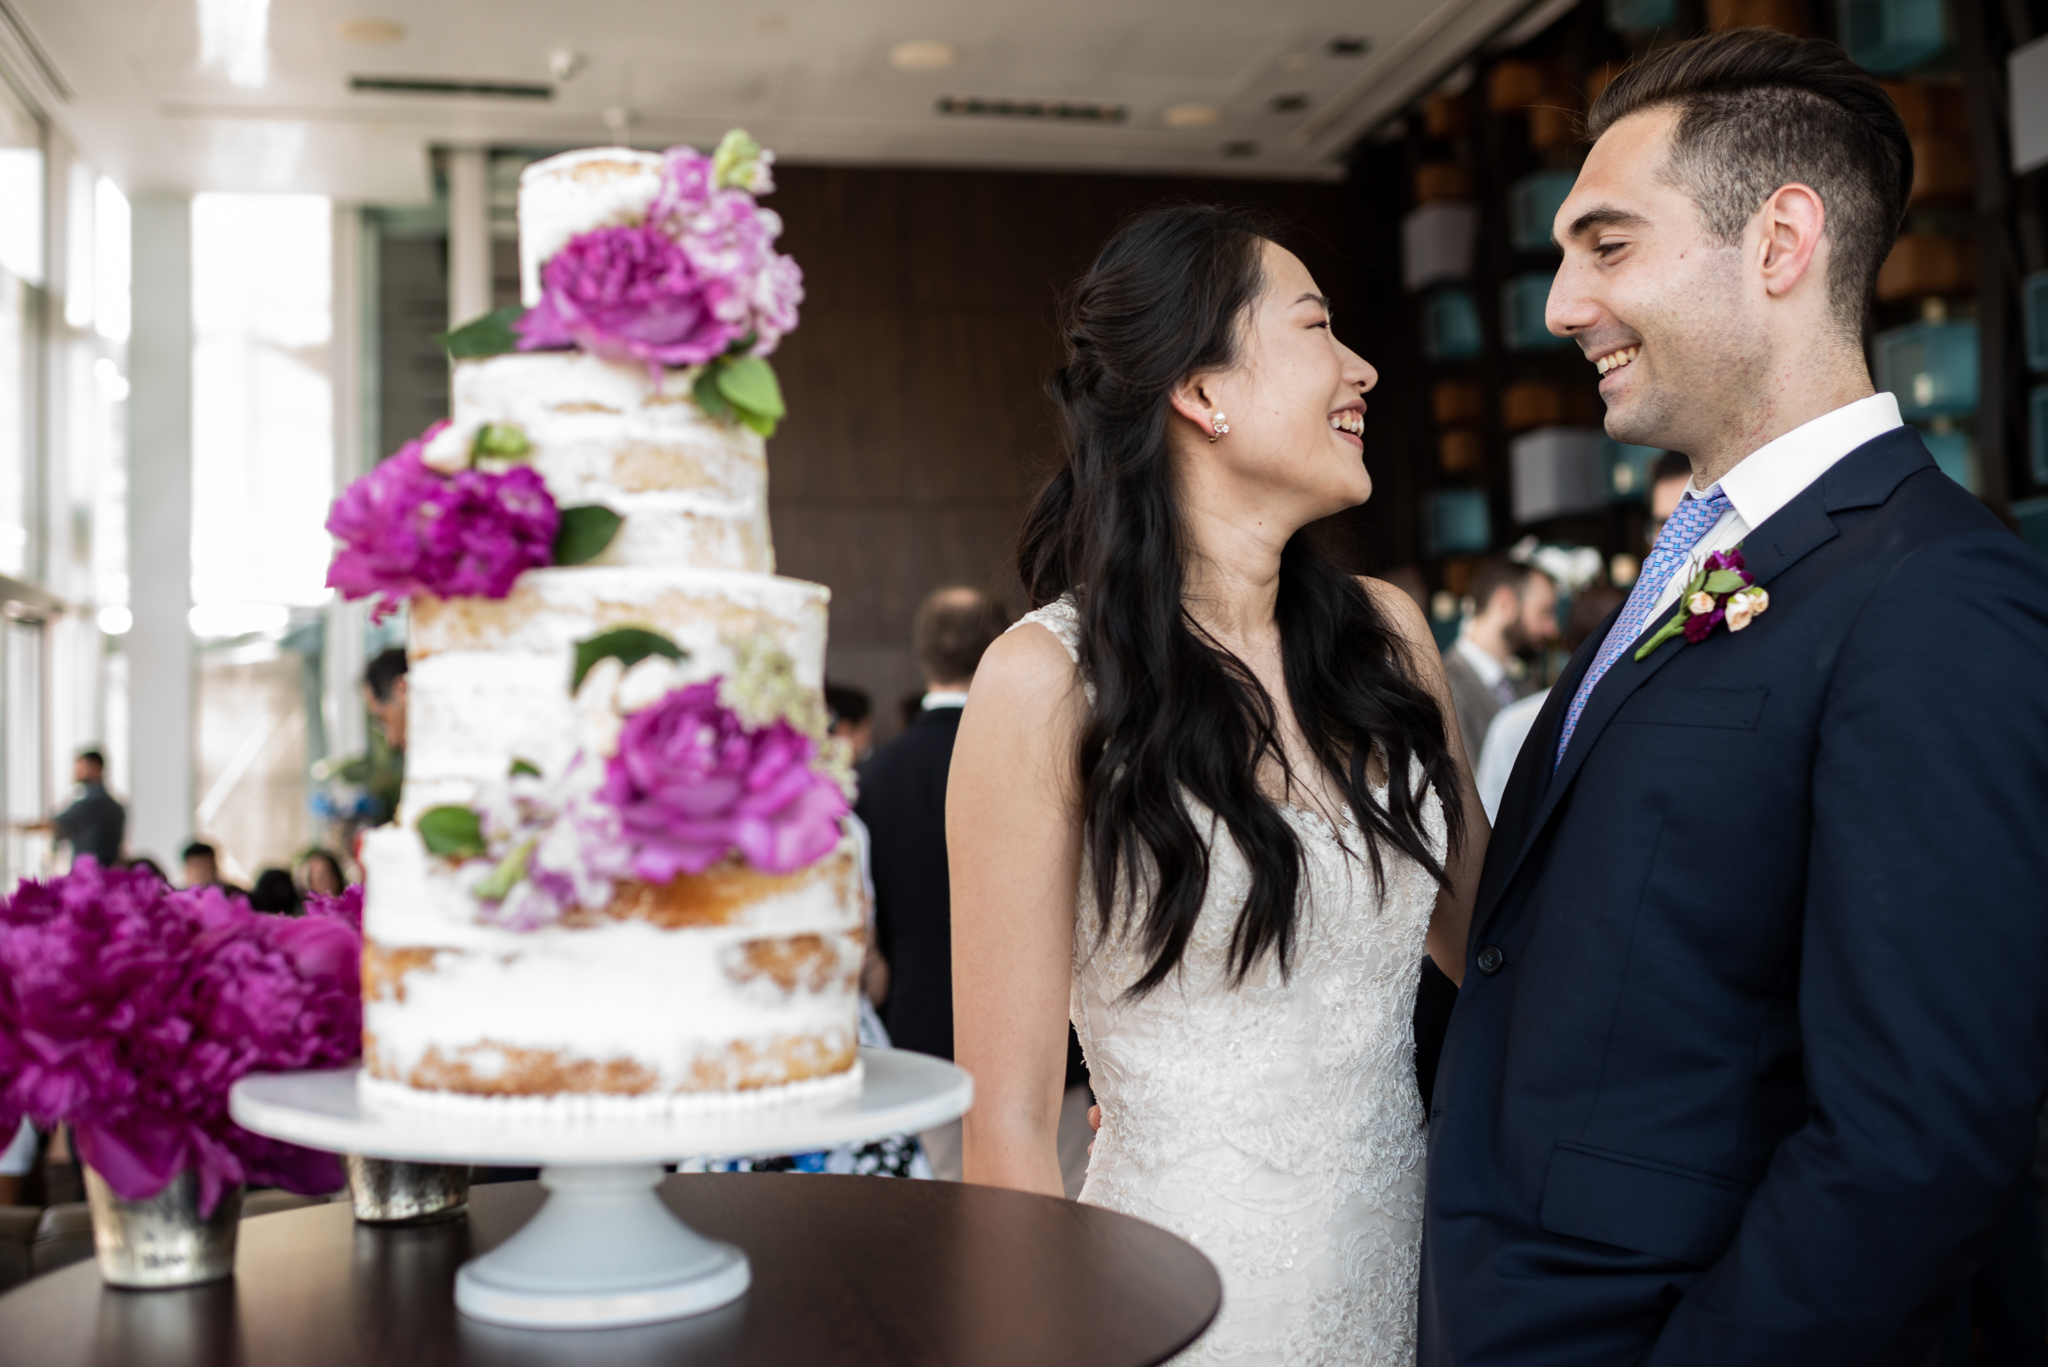 Saki & Zach's Wedding by Romina Hendlin-015.jpg